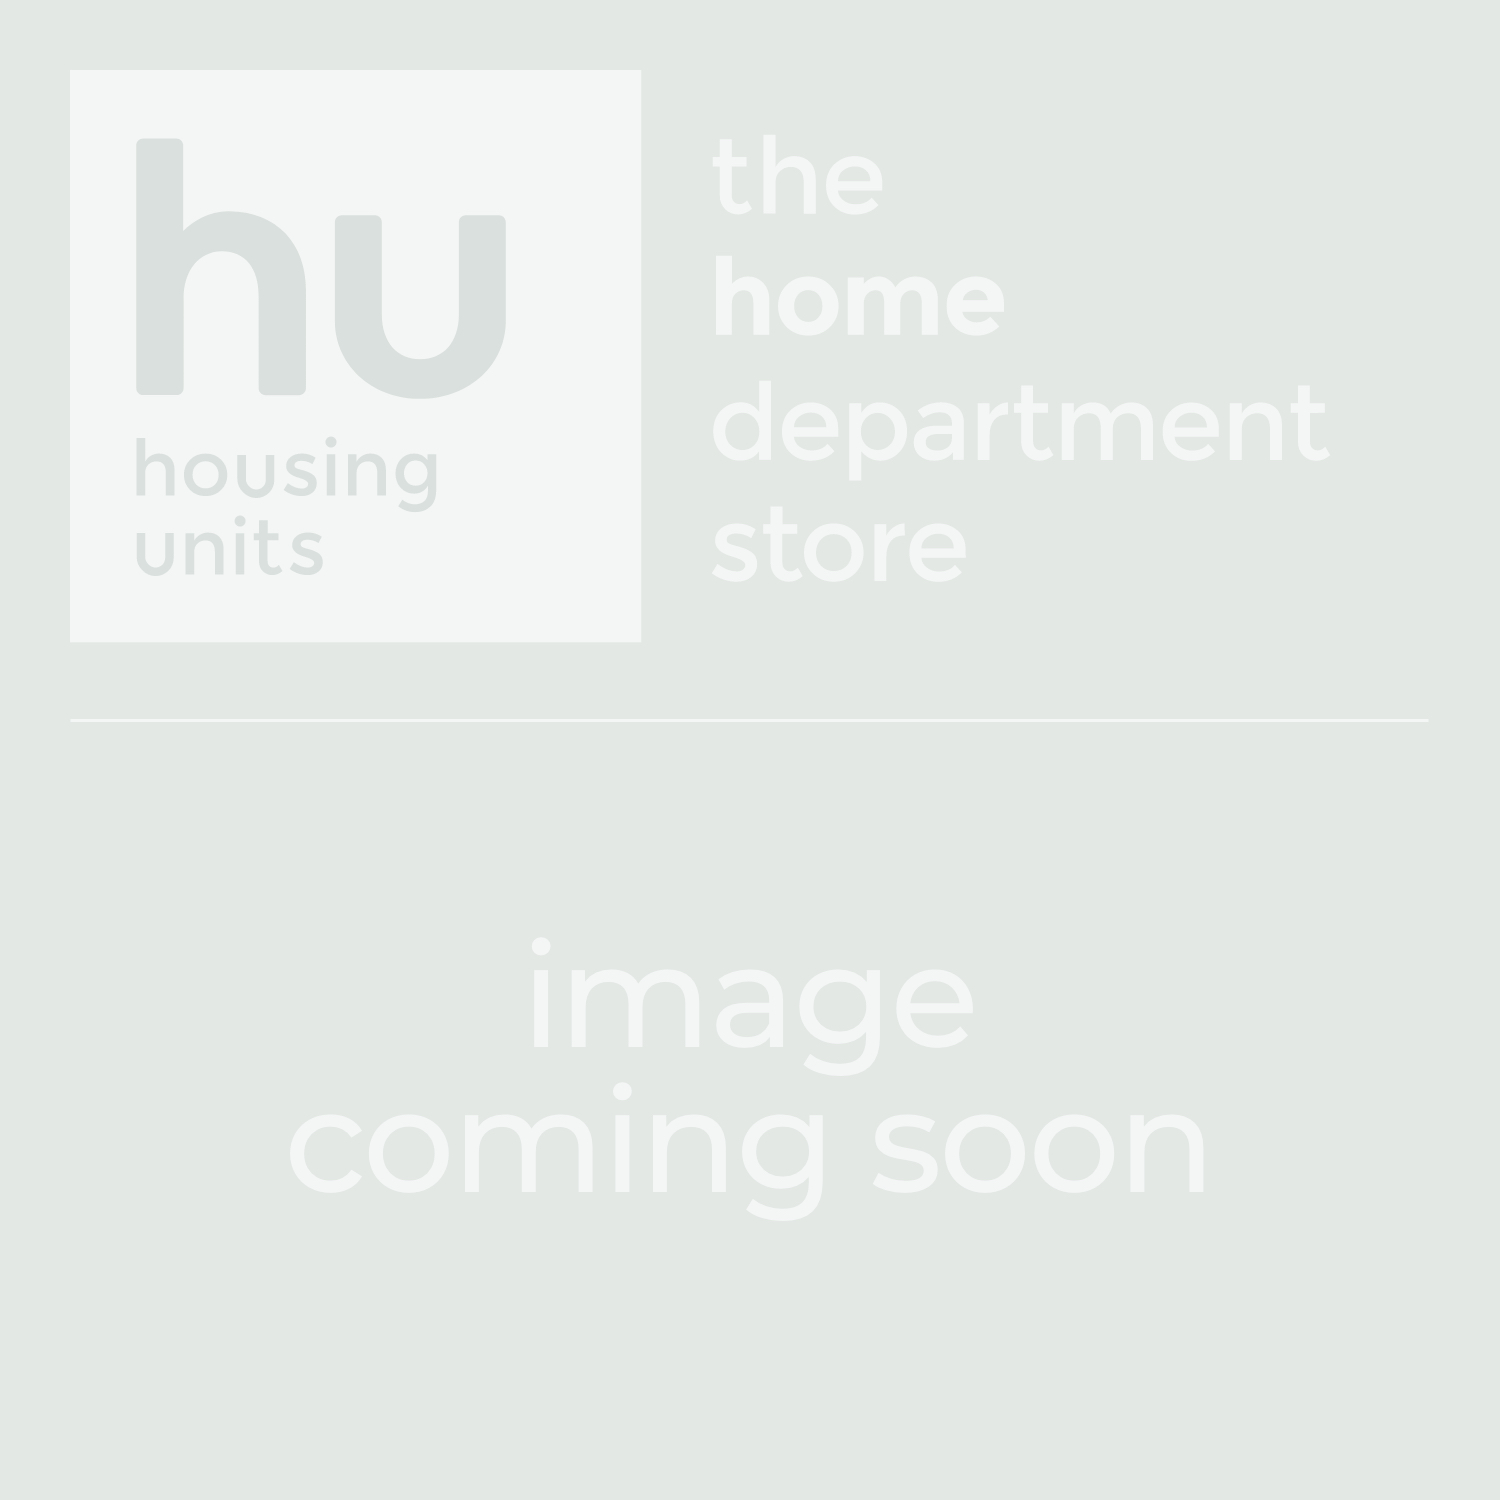 Breville New York Matt Black 4 Slice Toaster | Housing Units